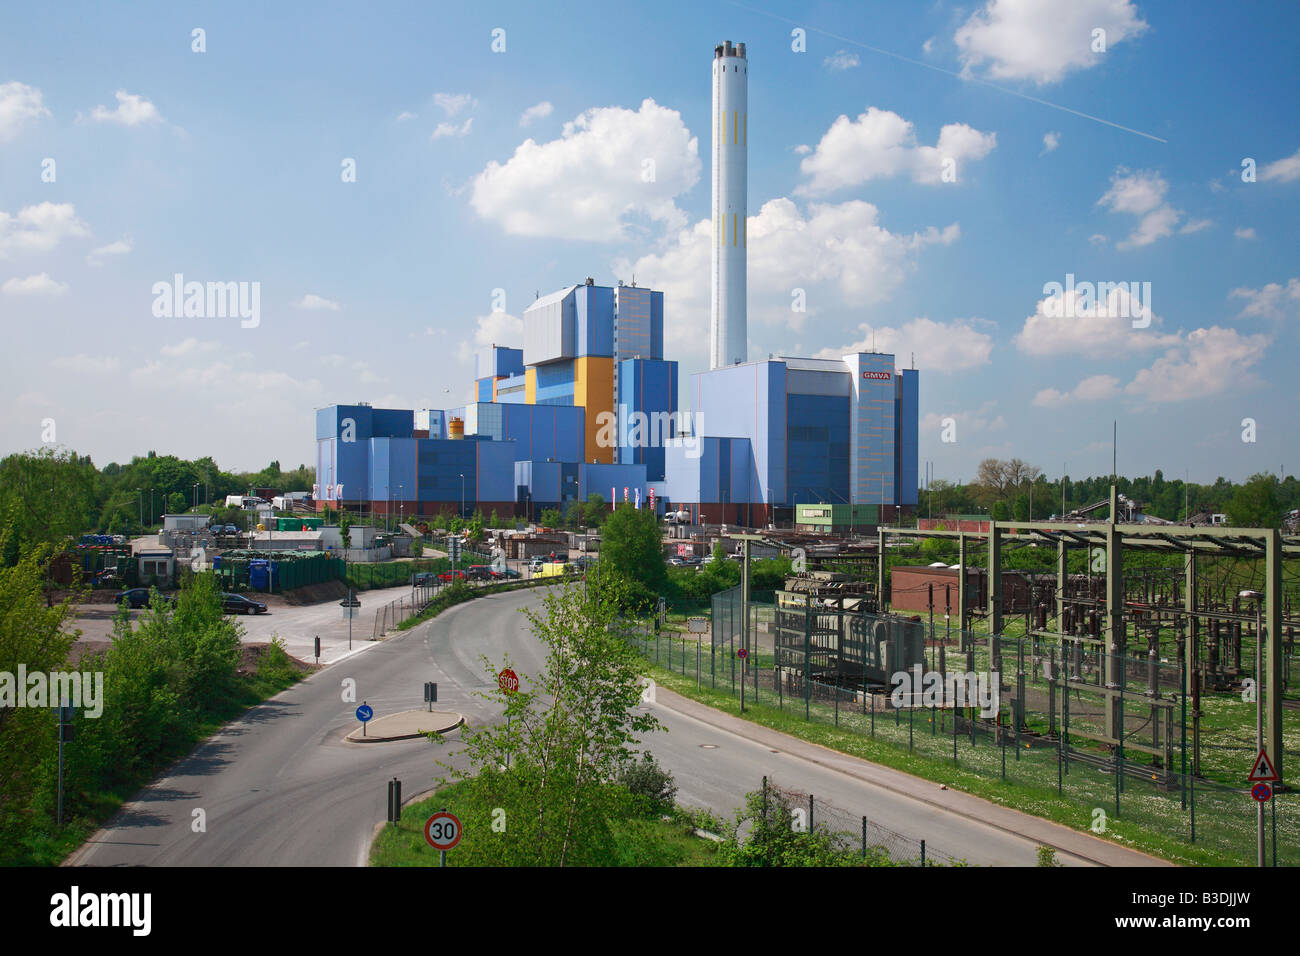 Am Kamin Oberhausen Incinerator Germany Stockfotos And Incinerator Germany